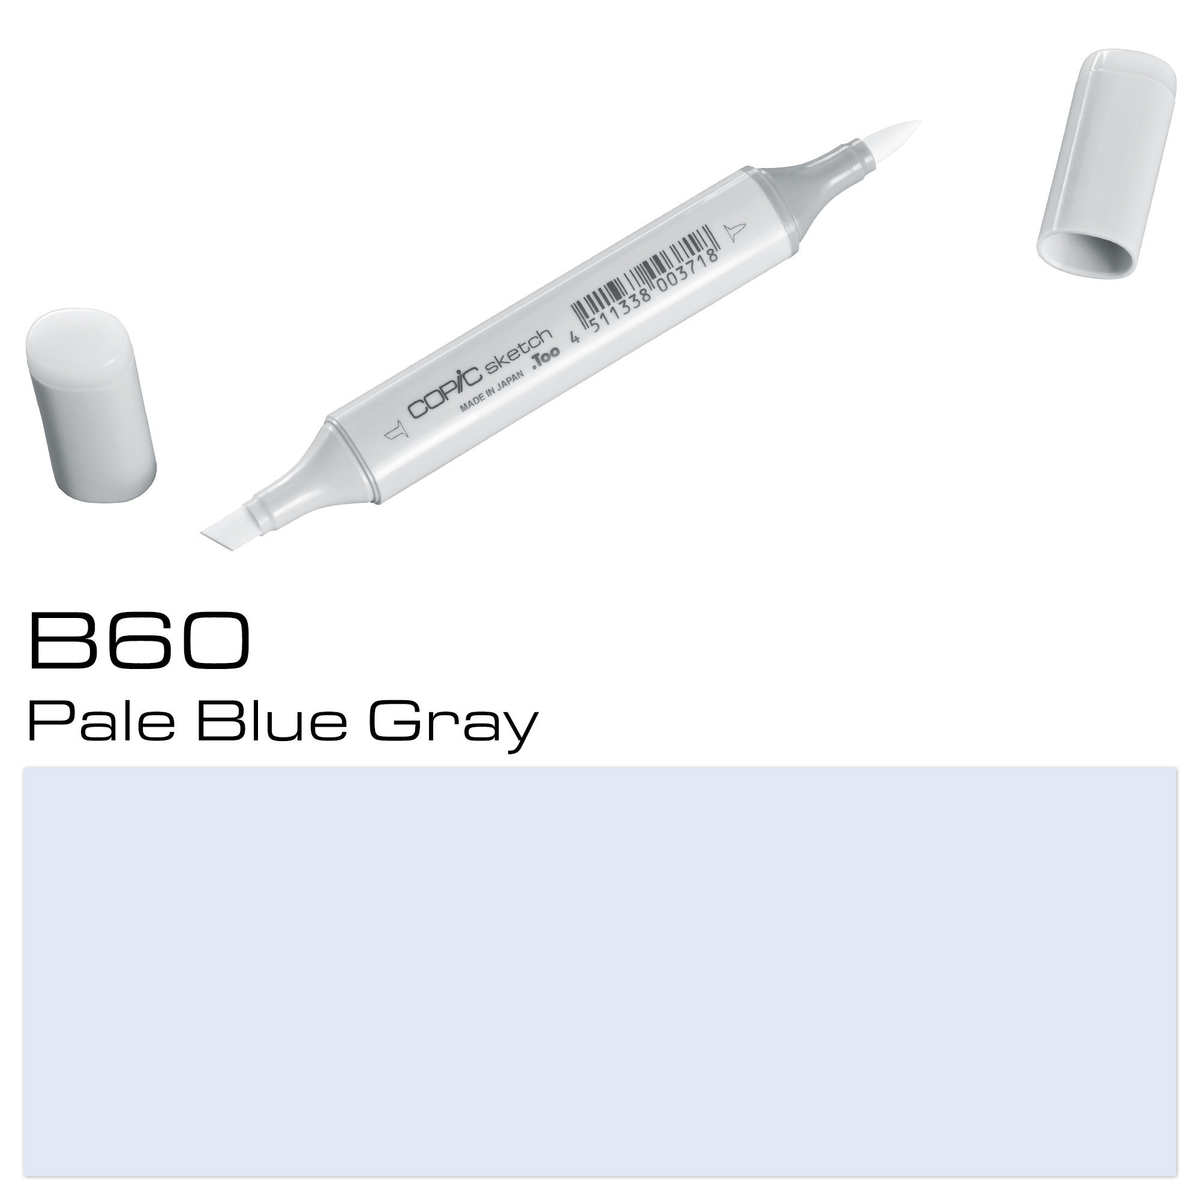 Copic Sketch B60 pal.blue grey